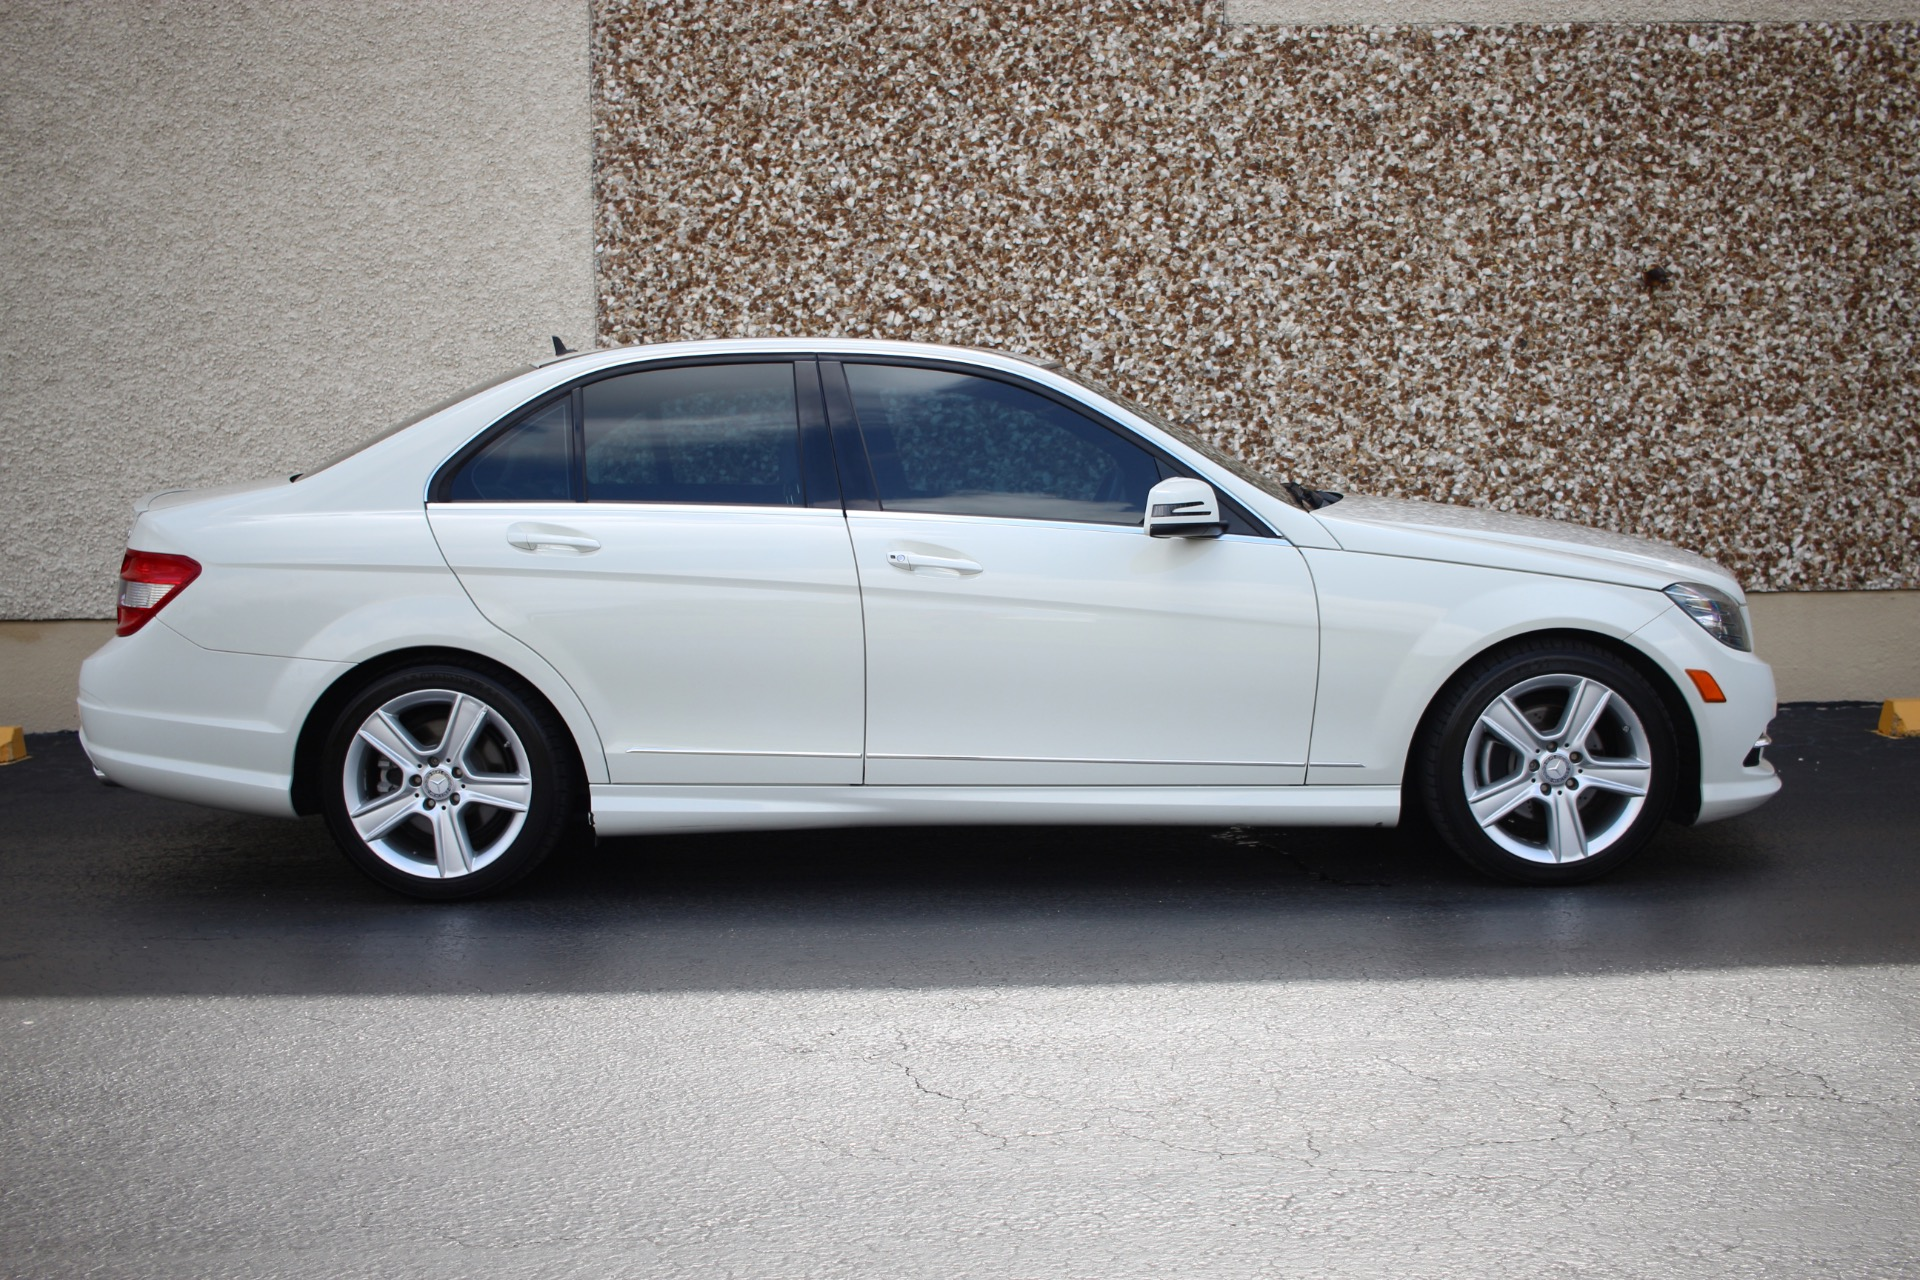 class used spinelli inventory in en c benz mercedes kia for montreal sale